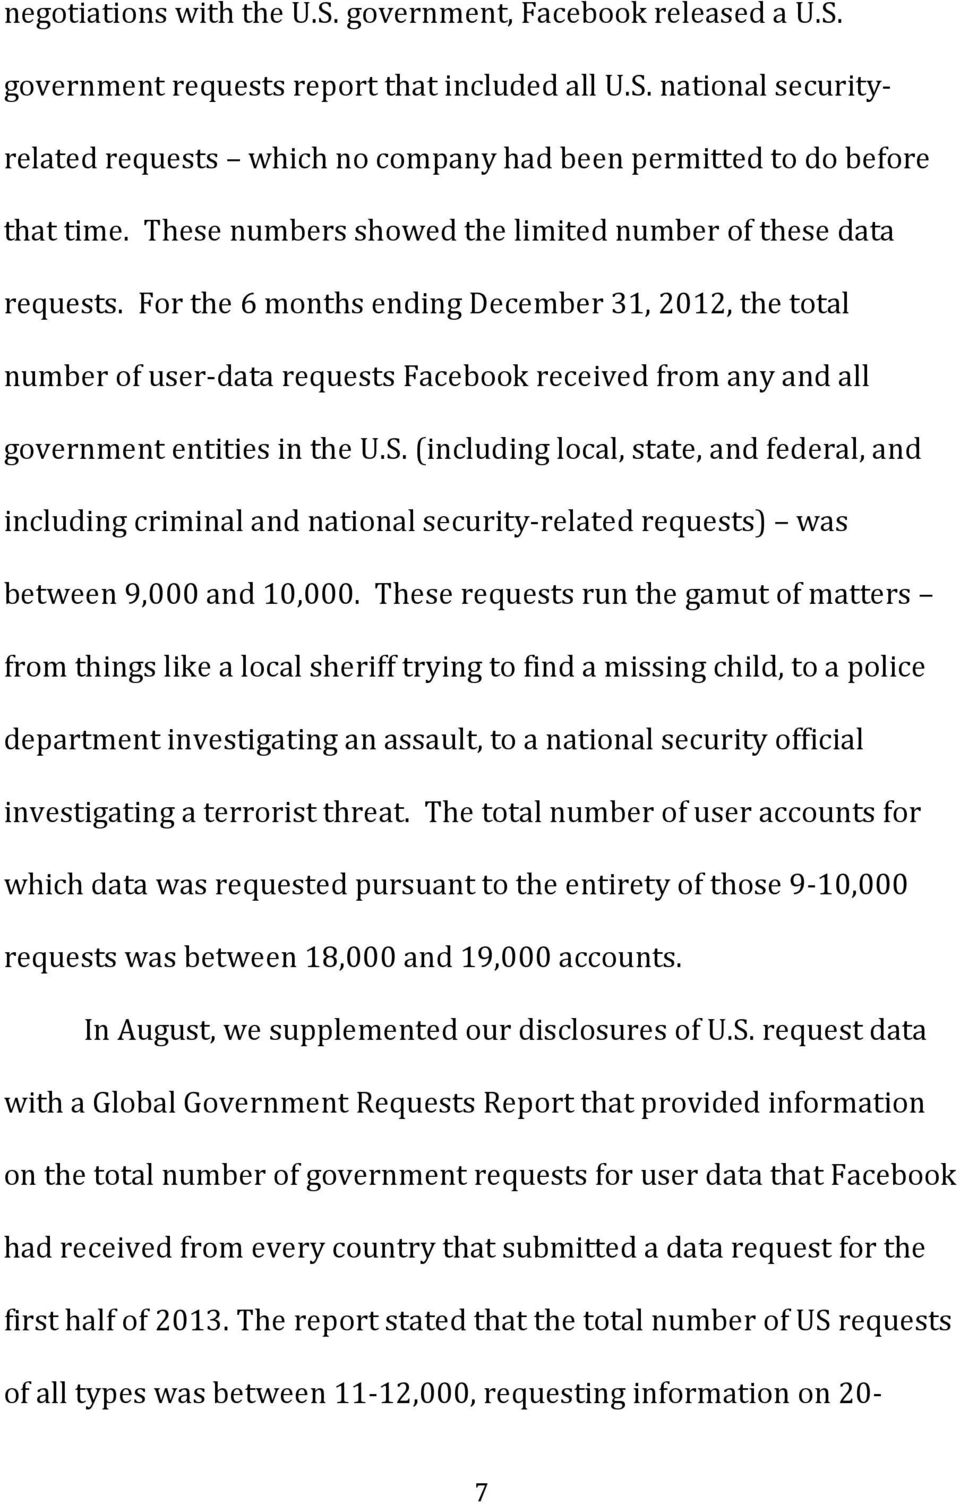 For the 6 months ending December 31, 2012, the total number of user- data requests Facebook received from any and all government entities in the U.S.